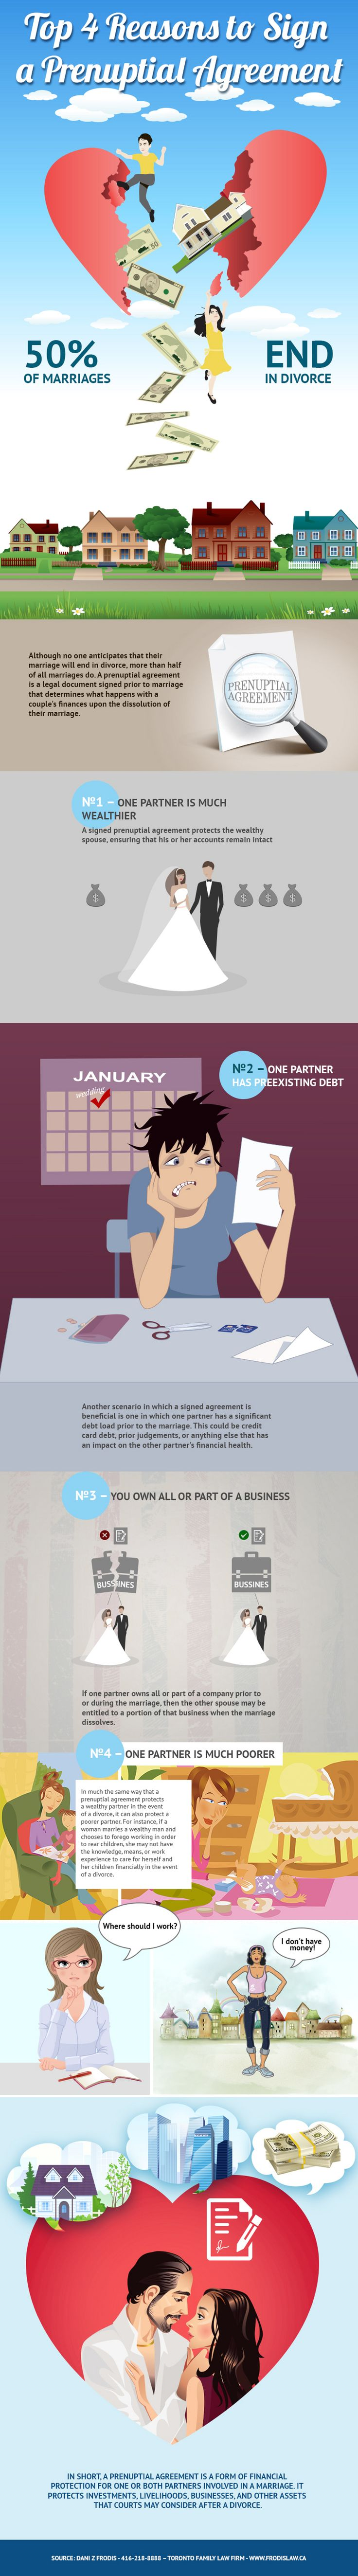 9 best prenuptial agreement images on pinterest prenup agreement in this post you will read about top 4 reasons to sign a prenuptial agreement platinumwayz